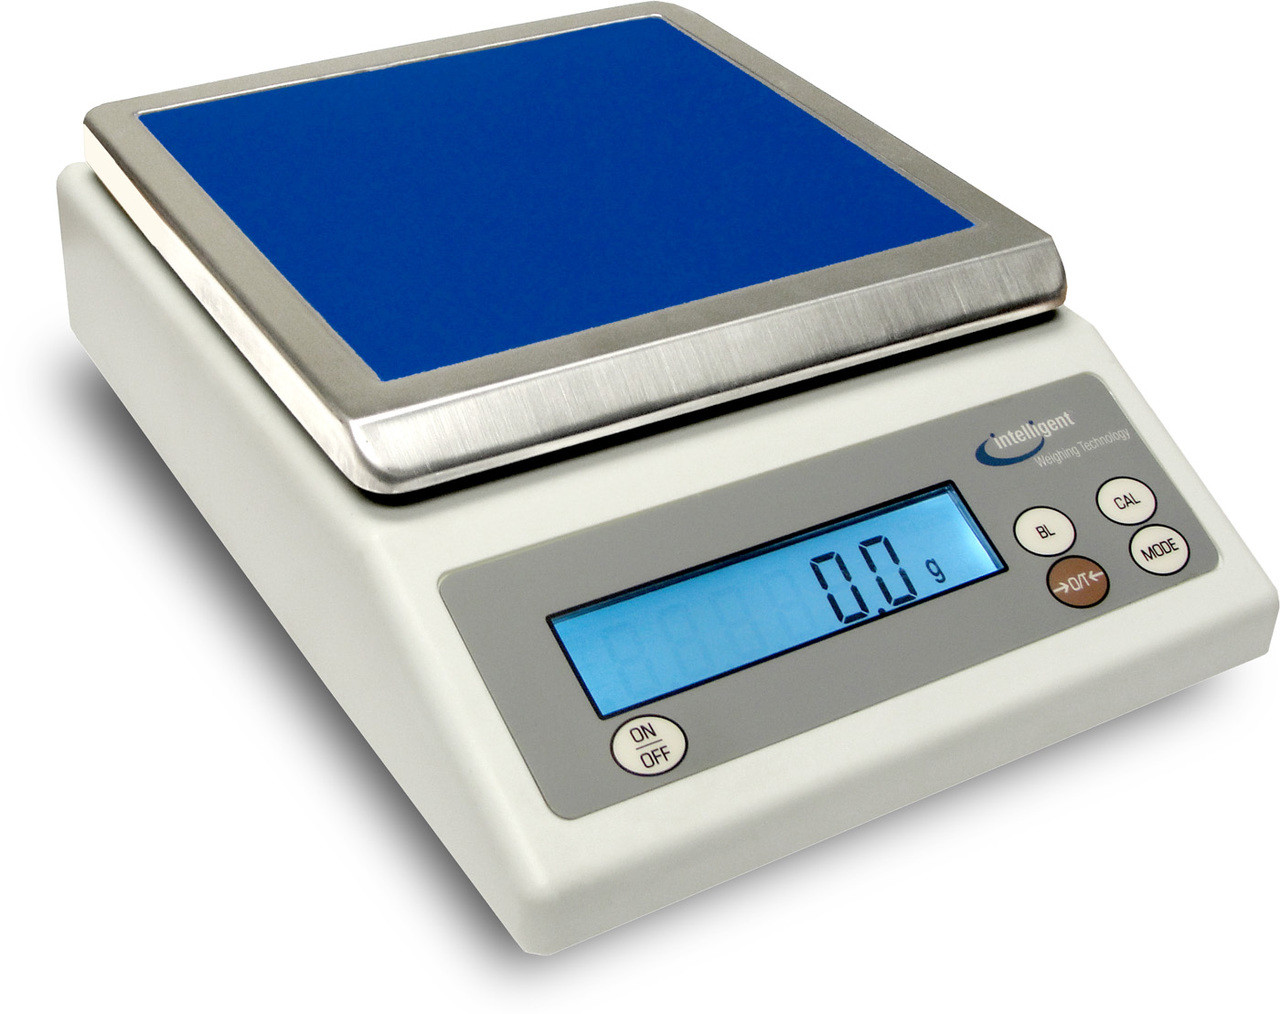 Precision Scale Intelligent Weighing Technology Pd 6000 Precision Balance 6000 G X 1 G